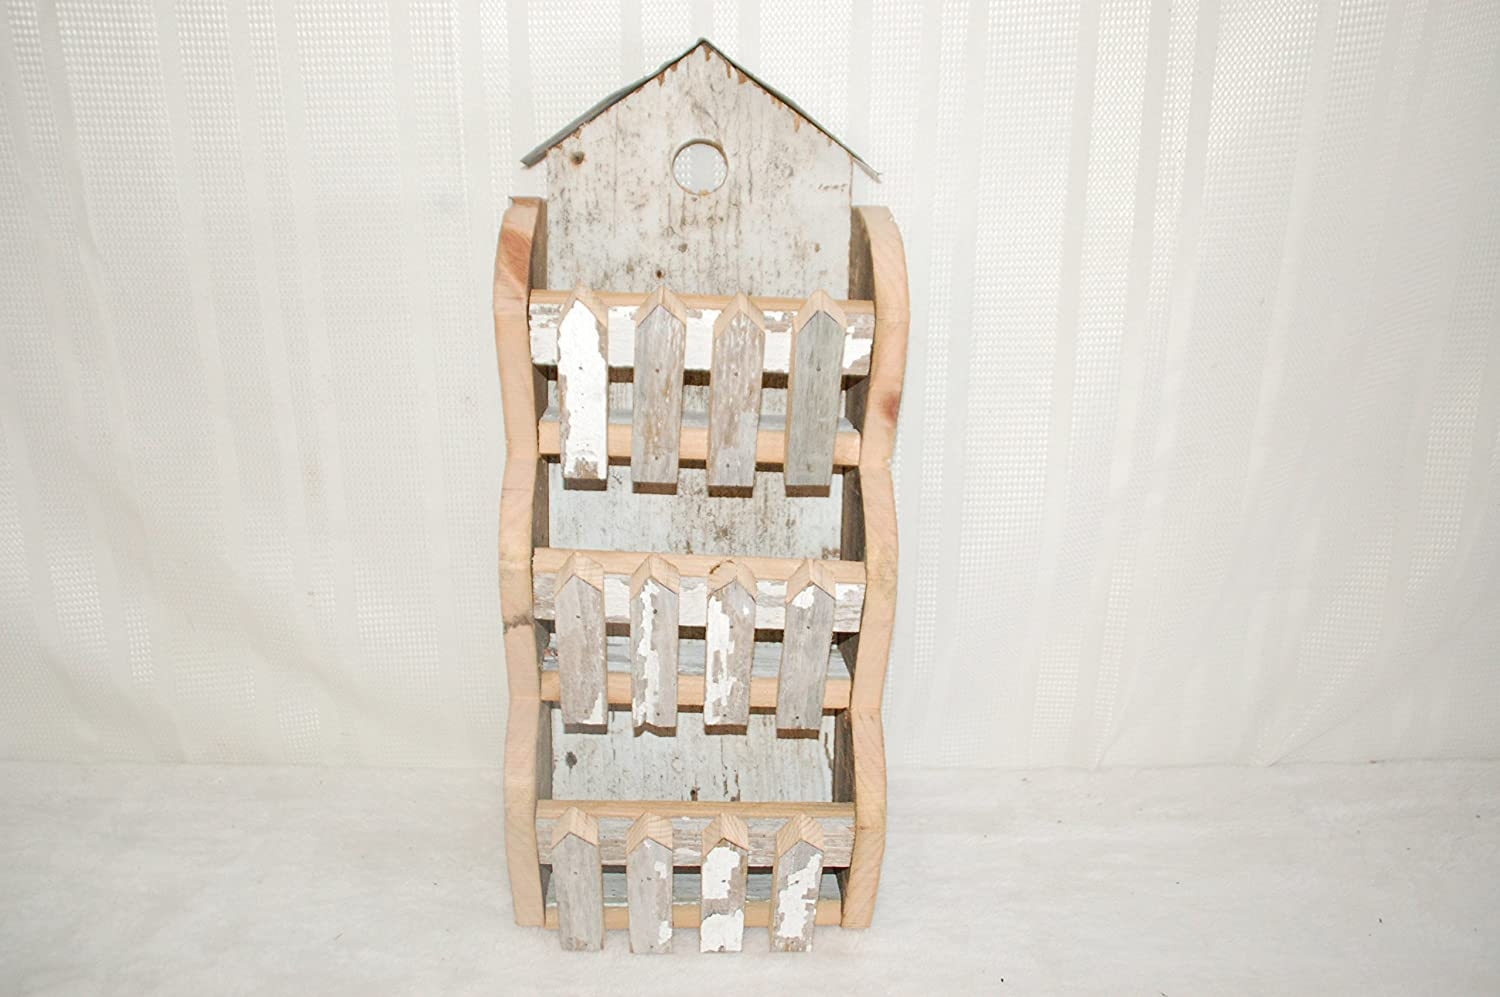 Kenzie's Kreations. Max 80% OFF Barnwood Mail letter Measures Holder. 3 : 8 Selling and selling